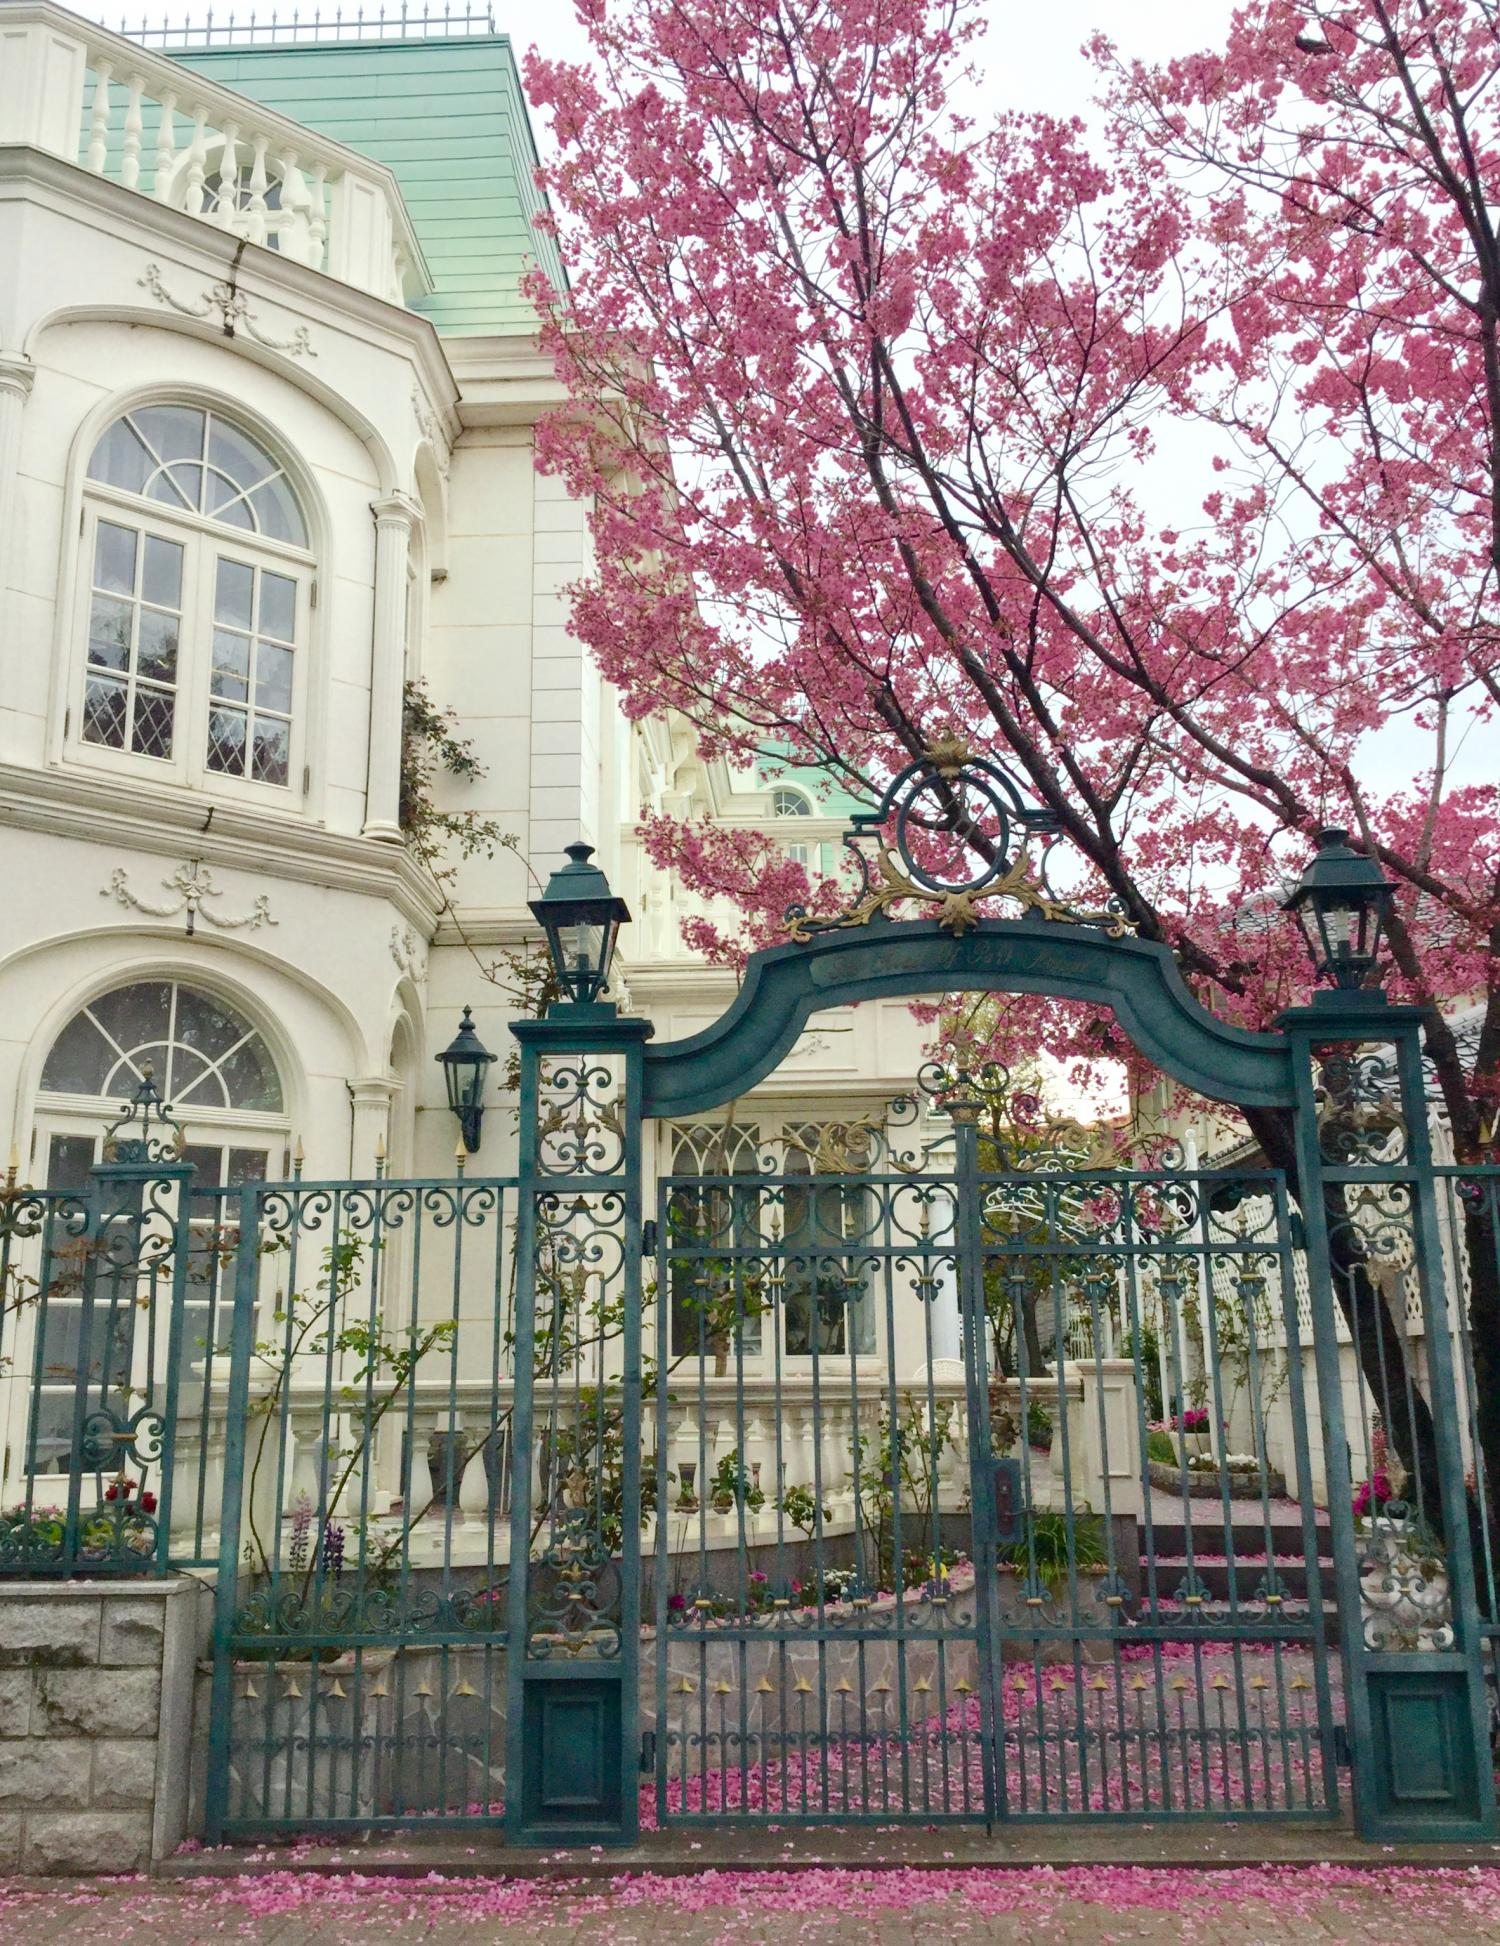 We want to take every year. Cherry tree and European-style building